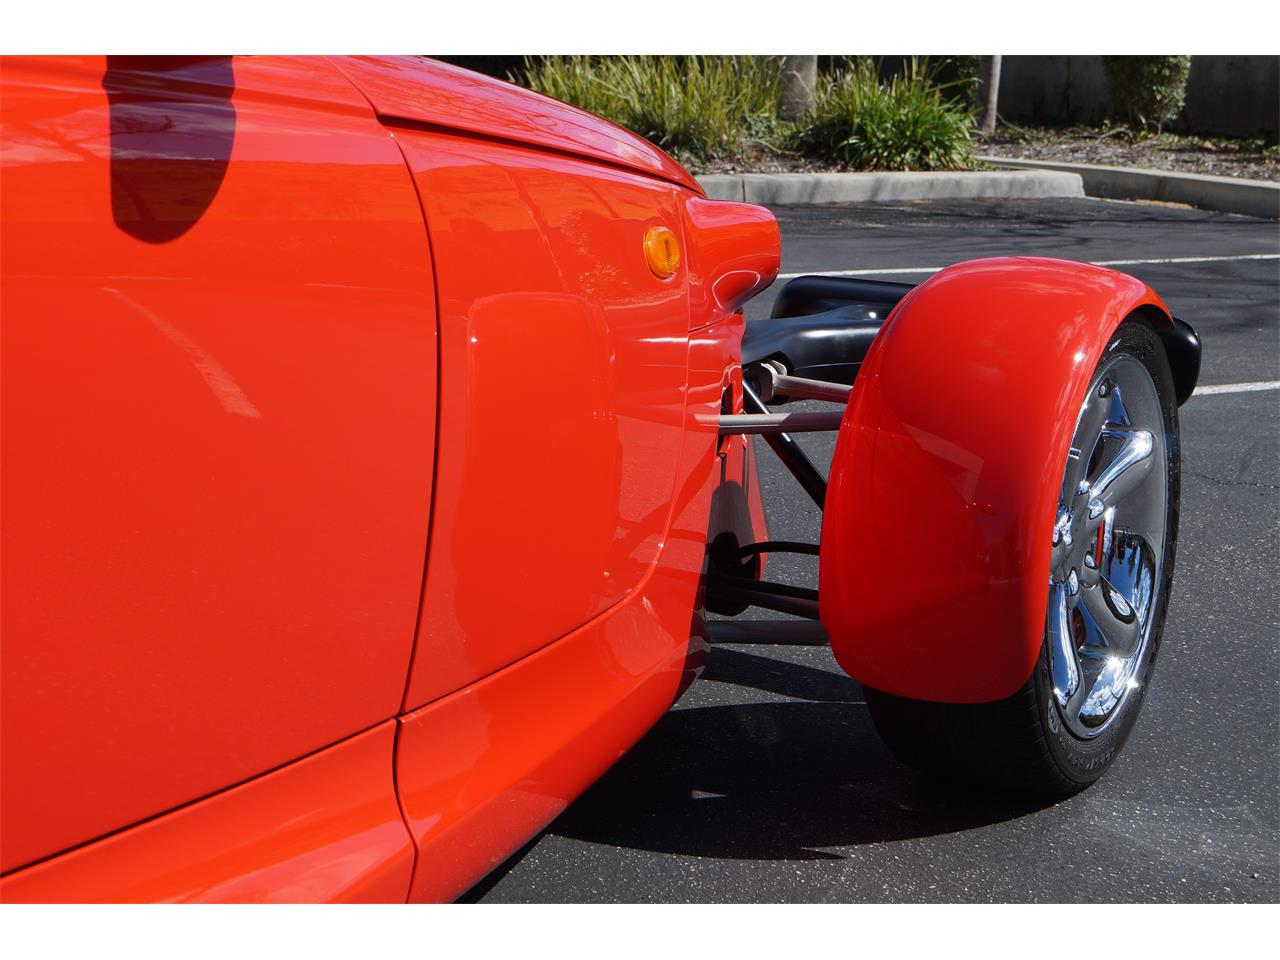 2000 Plymouth Prowler for sale in Thousand Oaks, CA – photo 36